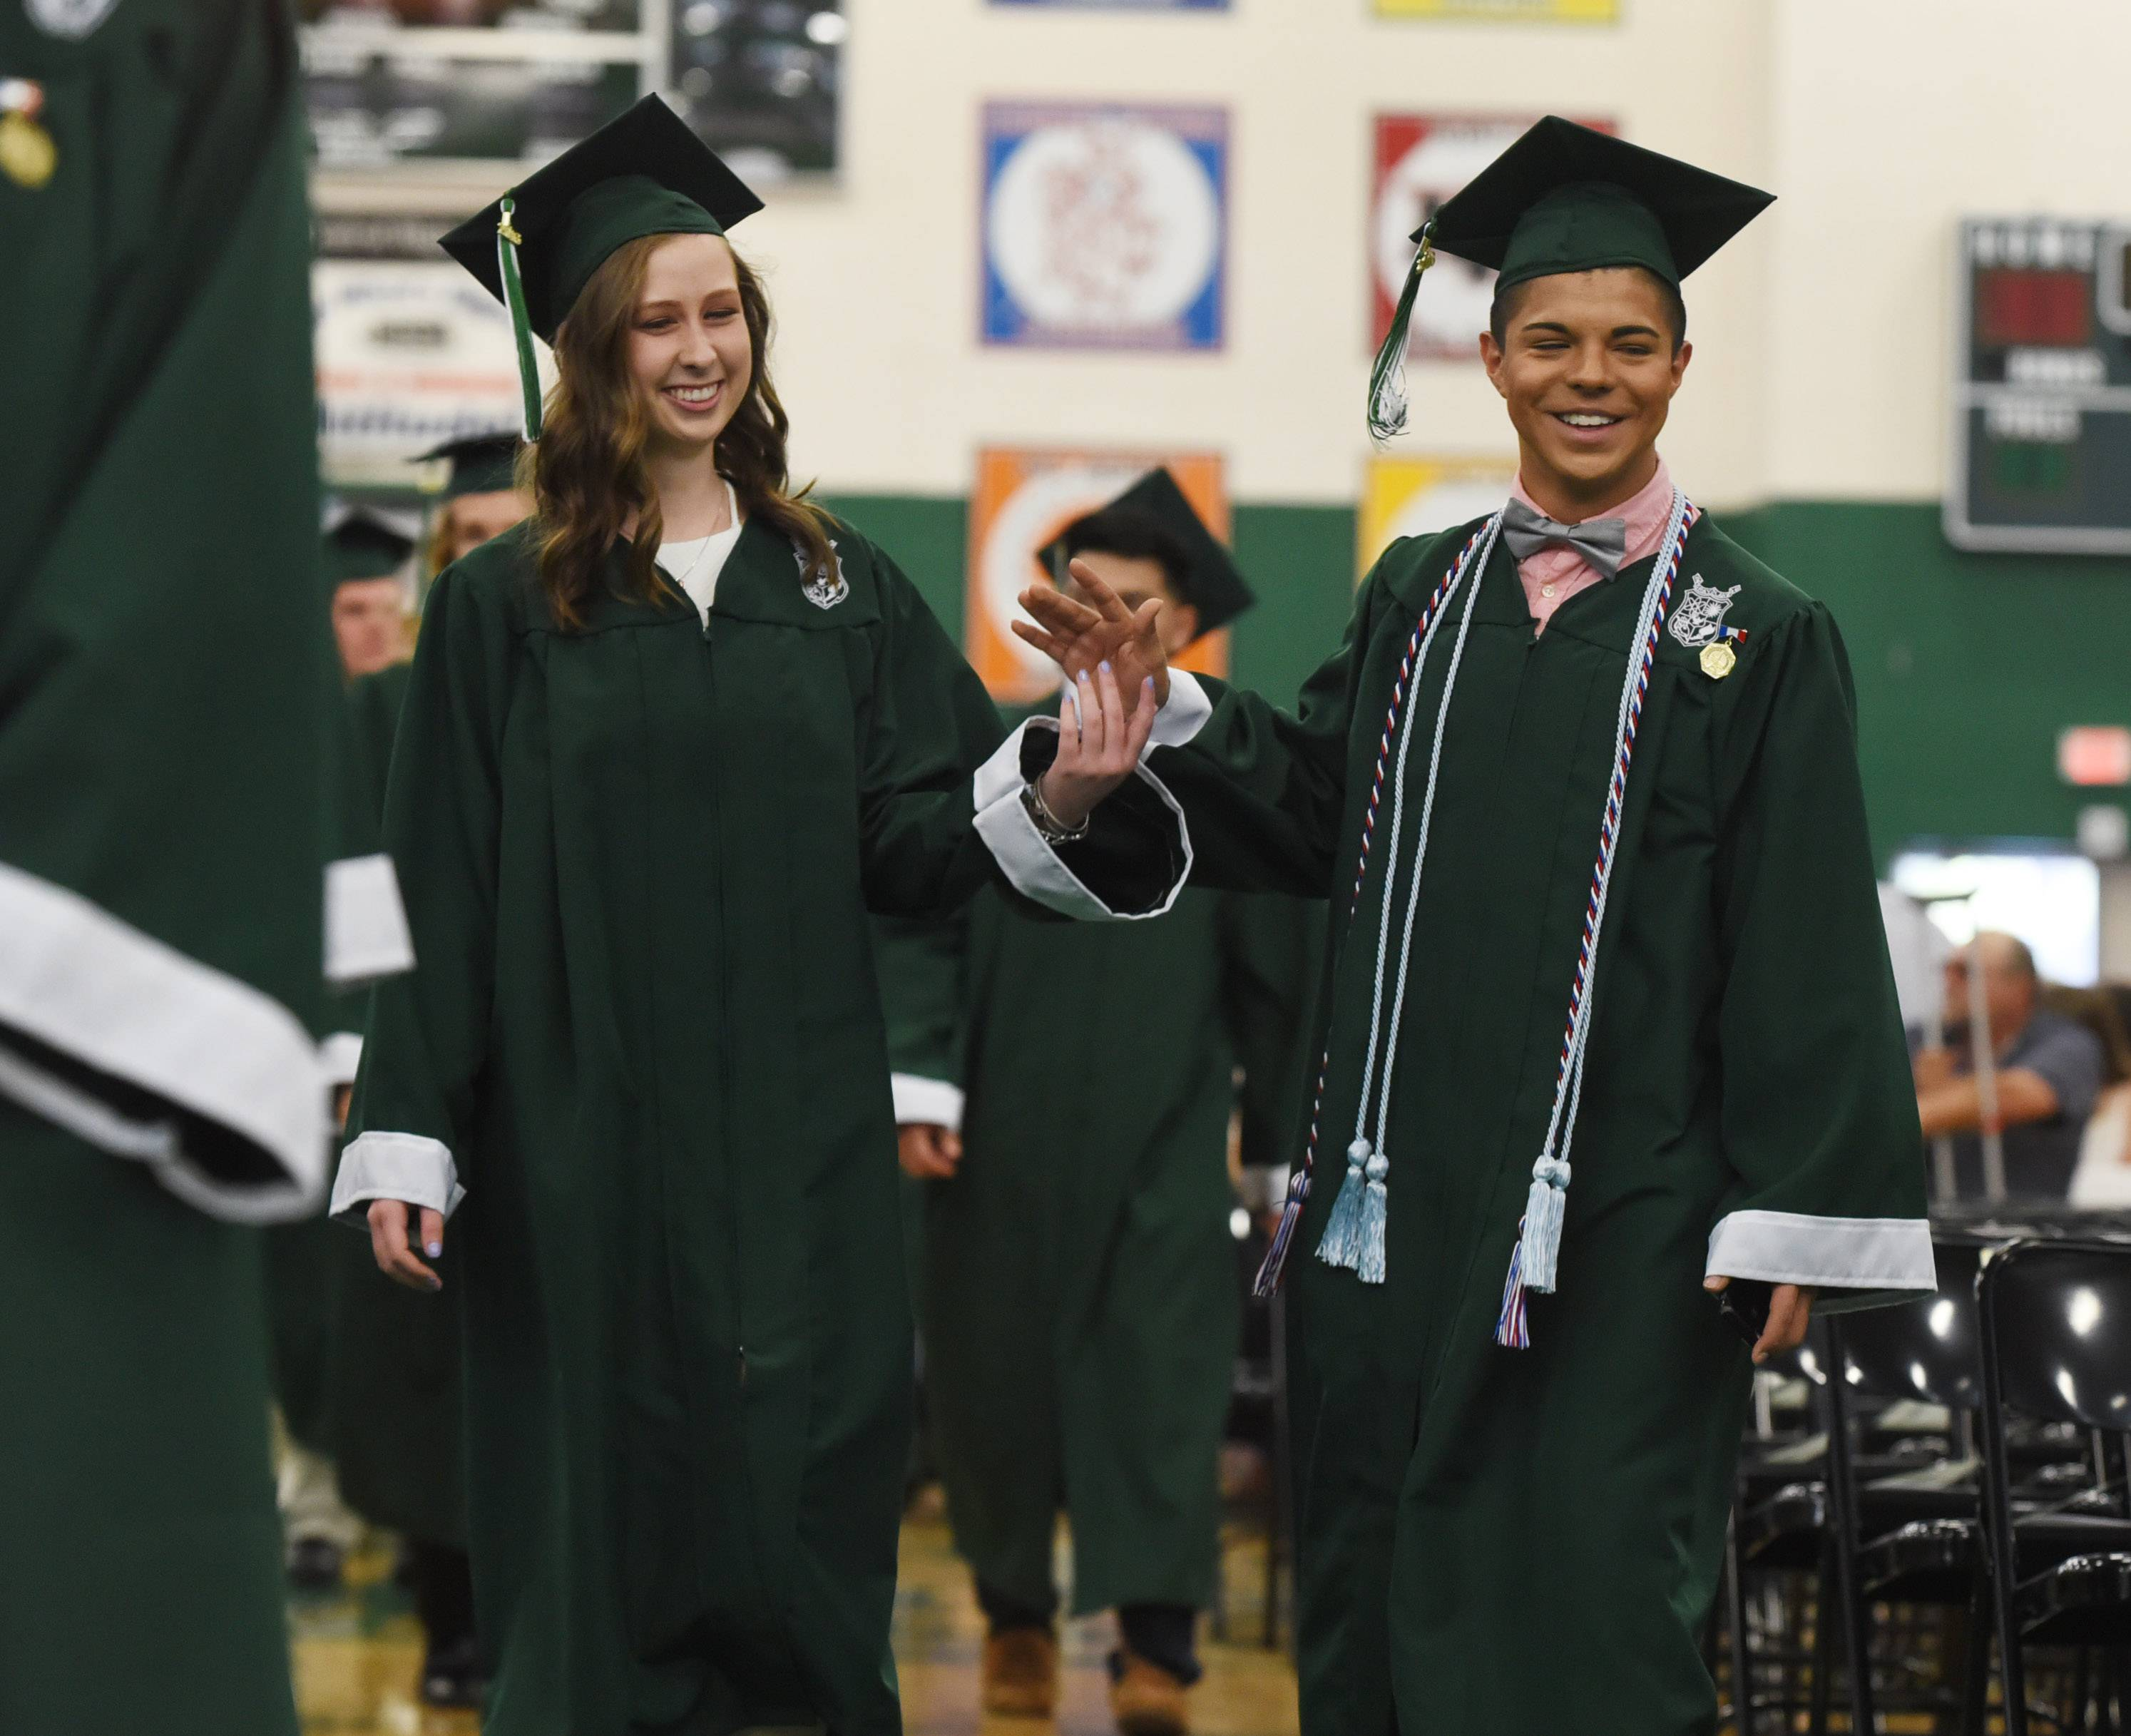 Images from the Grayslake Central High School graduation ceremony on Sunday, May 22 in Grayslake.